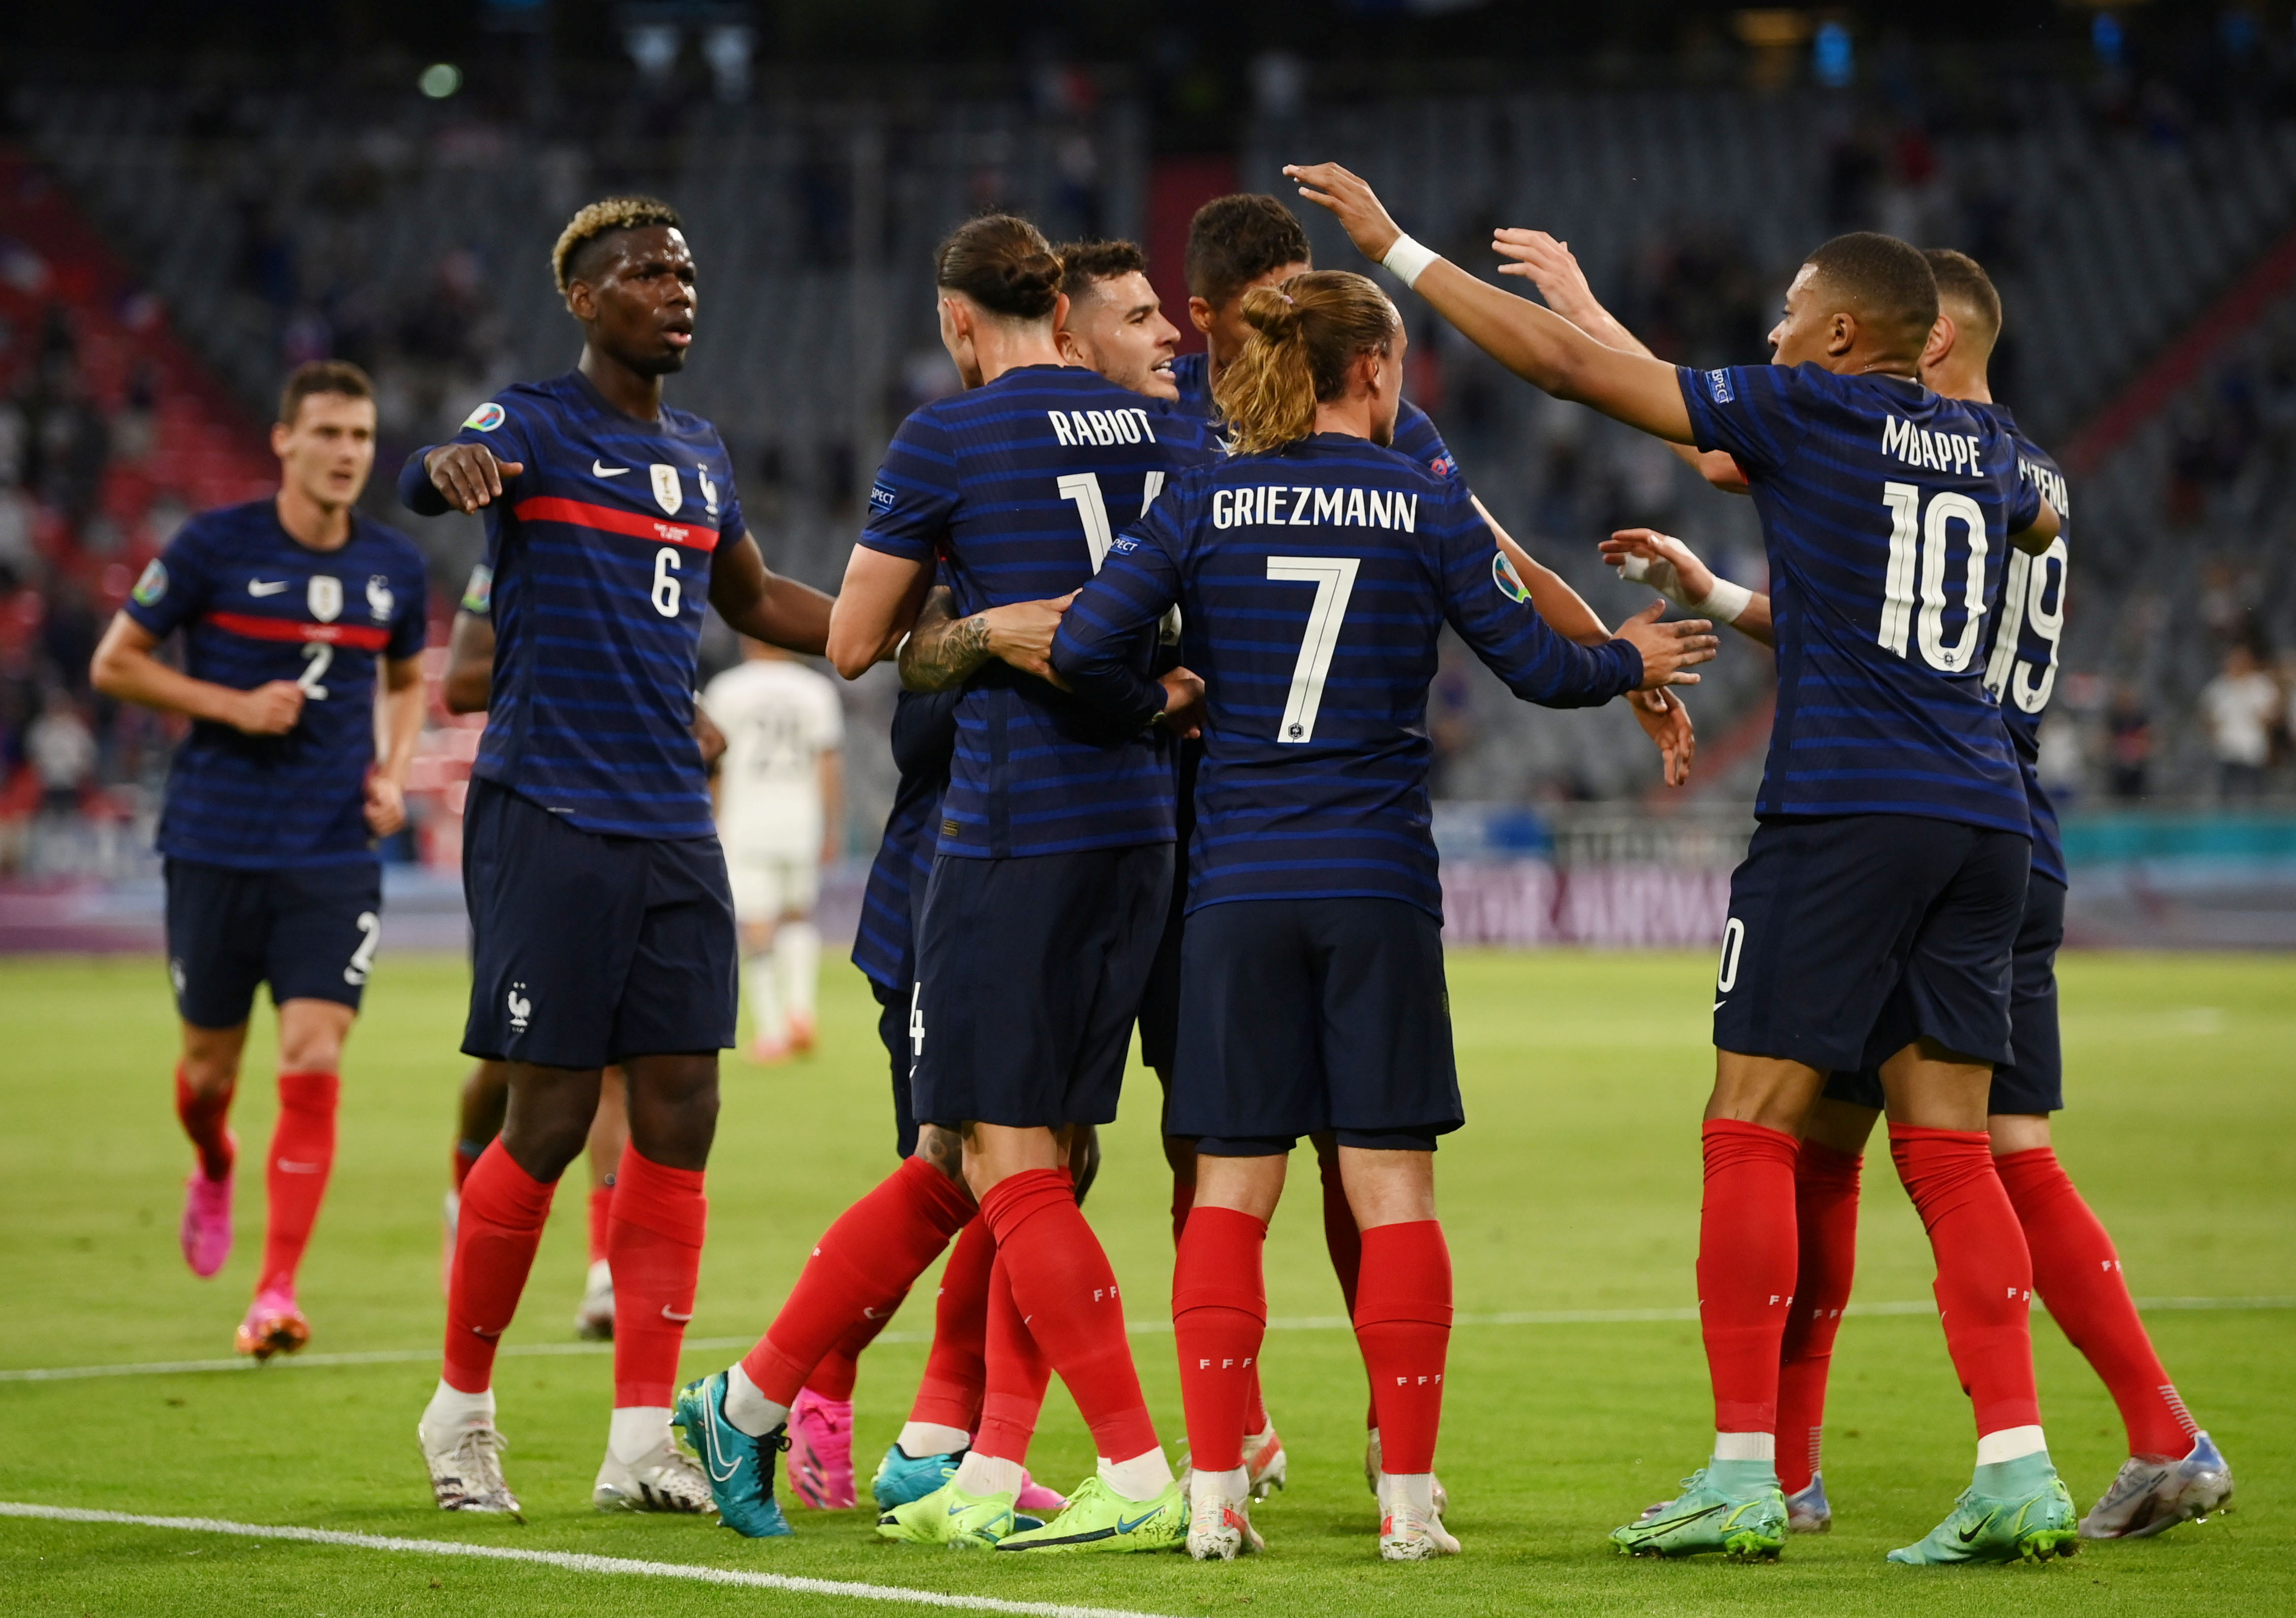 Soccer Football - Euro 2020 - Group F - France v Germany - Football Arena Munich, Munich, Germany - June 15, 2021 France's players celebrate after Germany's Mats Hummels scores an own goal and the first for France Pool via REUTERS/Matthias Hangst